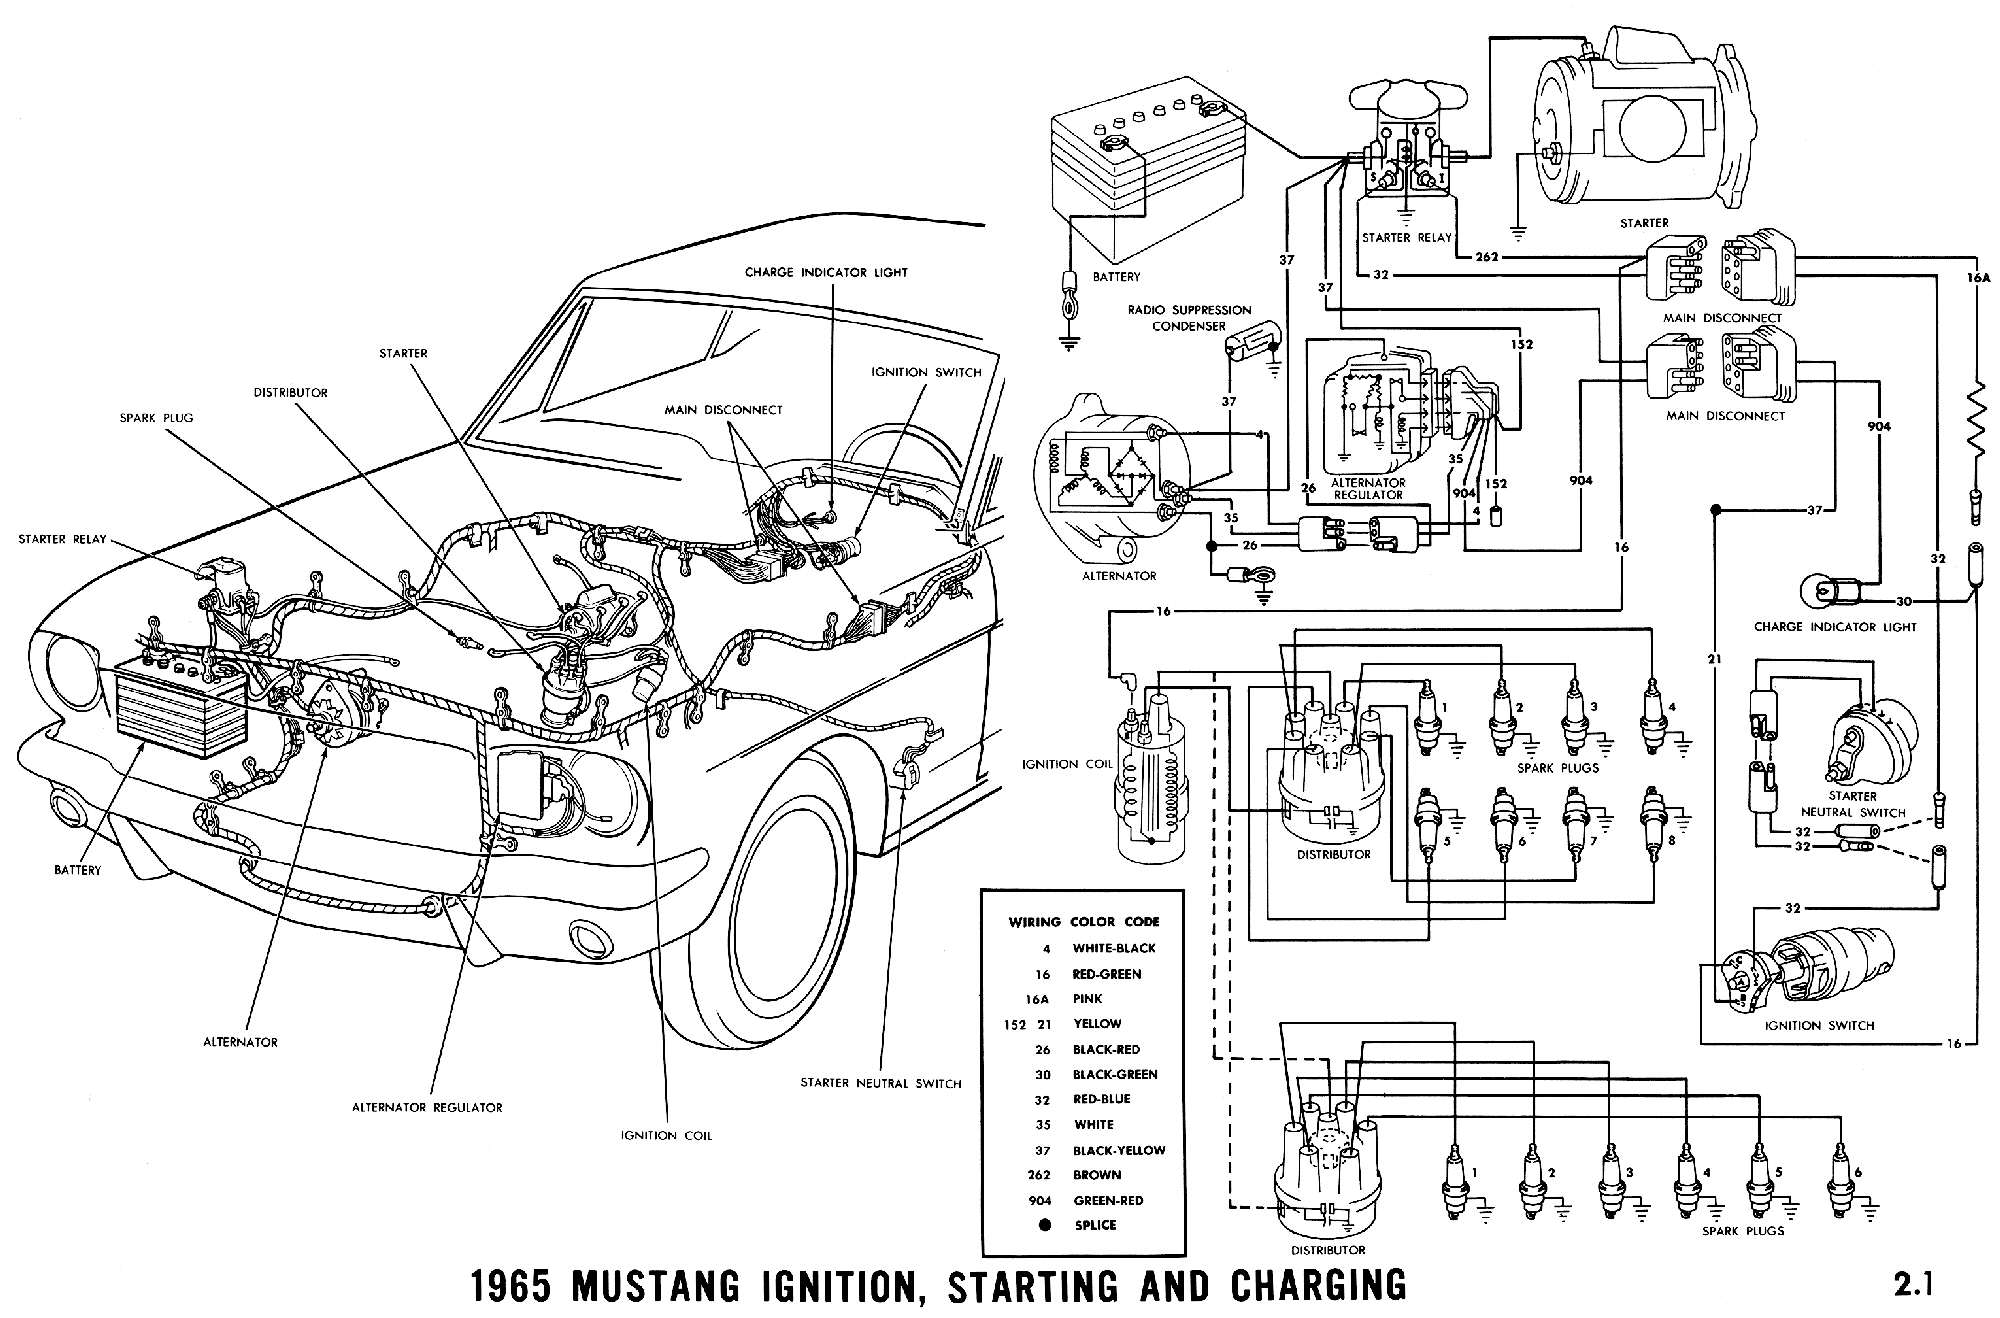 1966 Oldsmobile Convertible Wiring Diagram Schematic Library Pontiac Catalina Charging Pictorial And